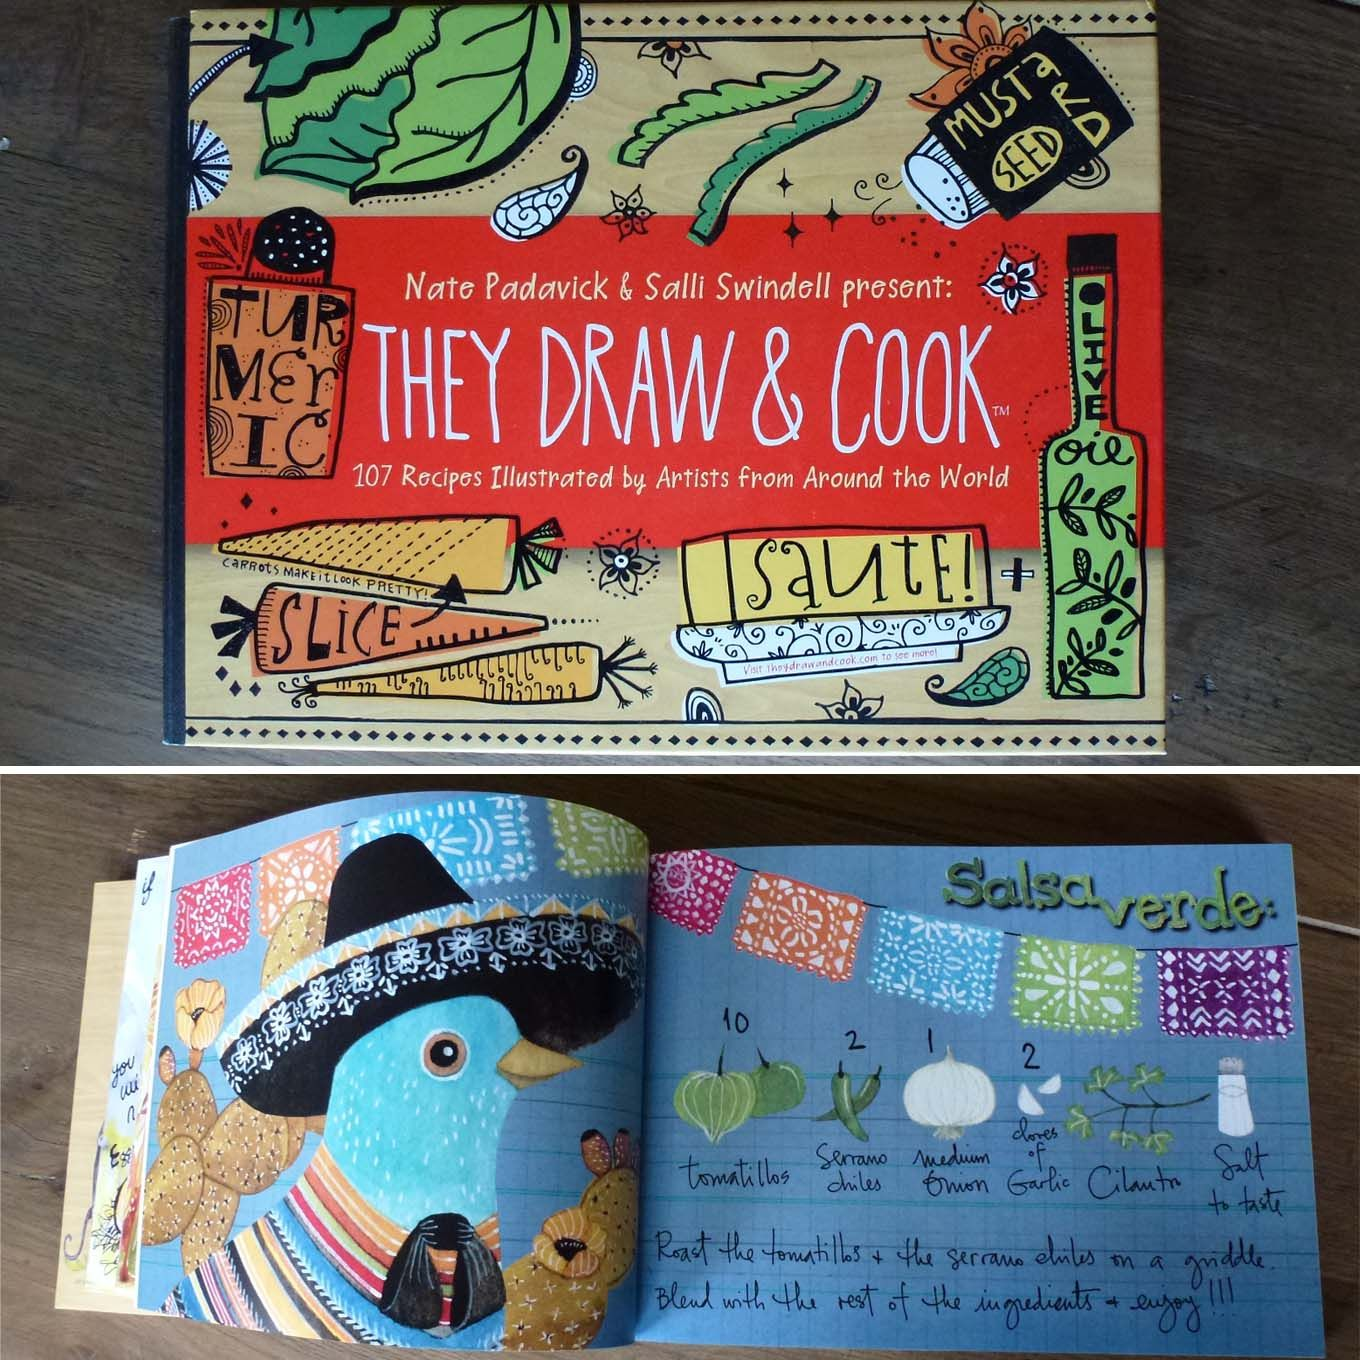 the draw & cook